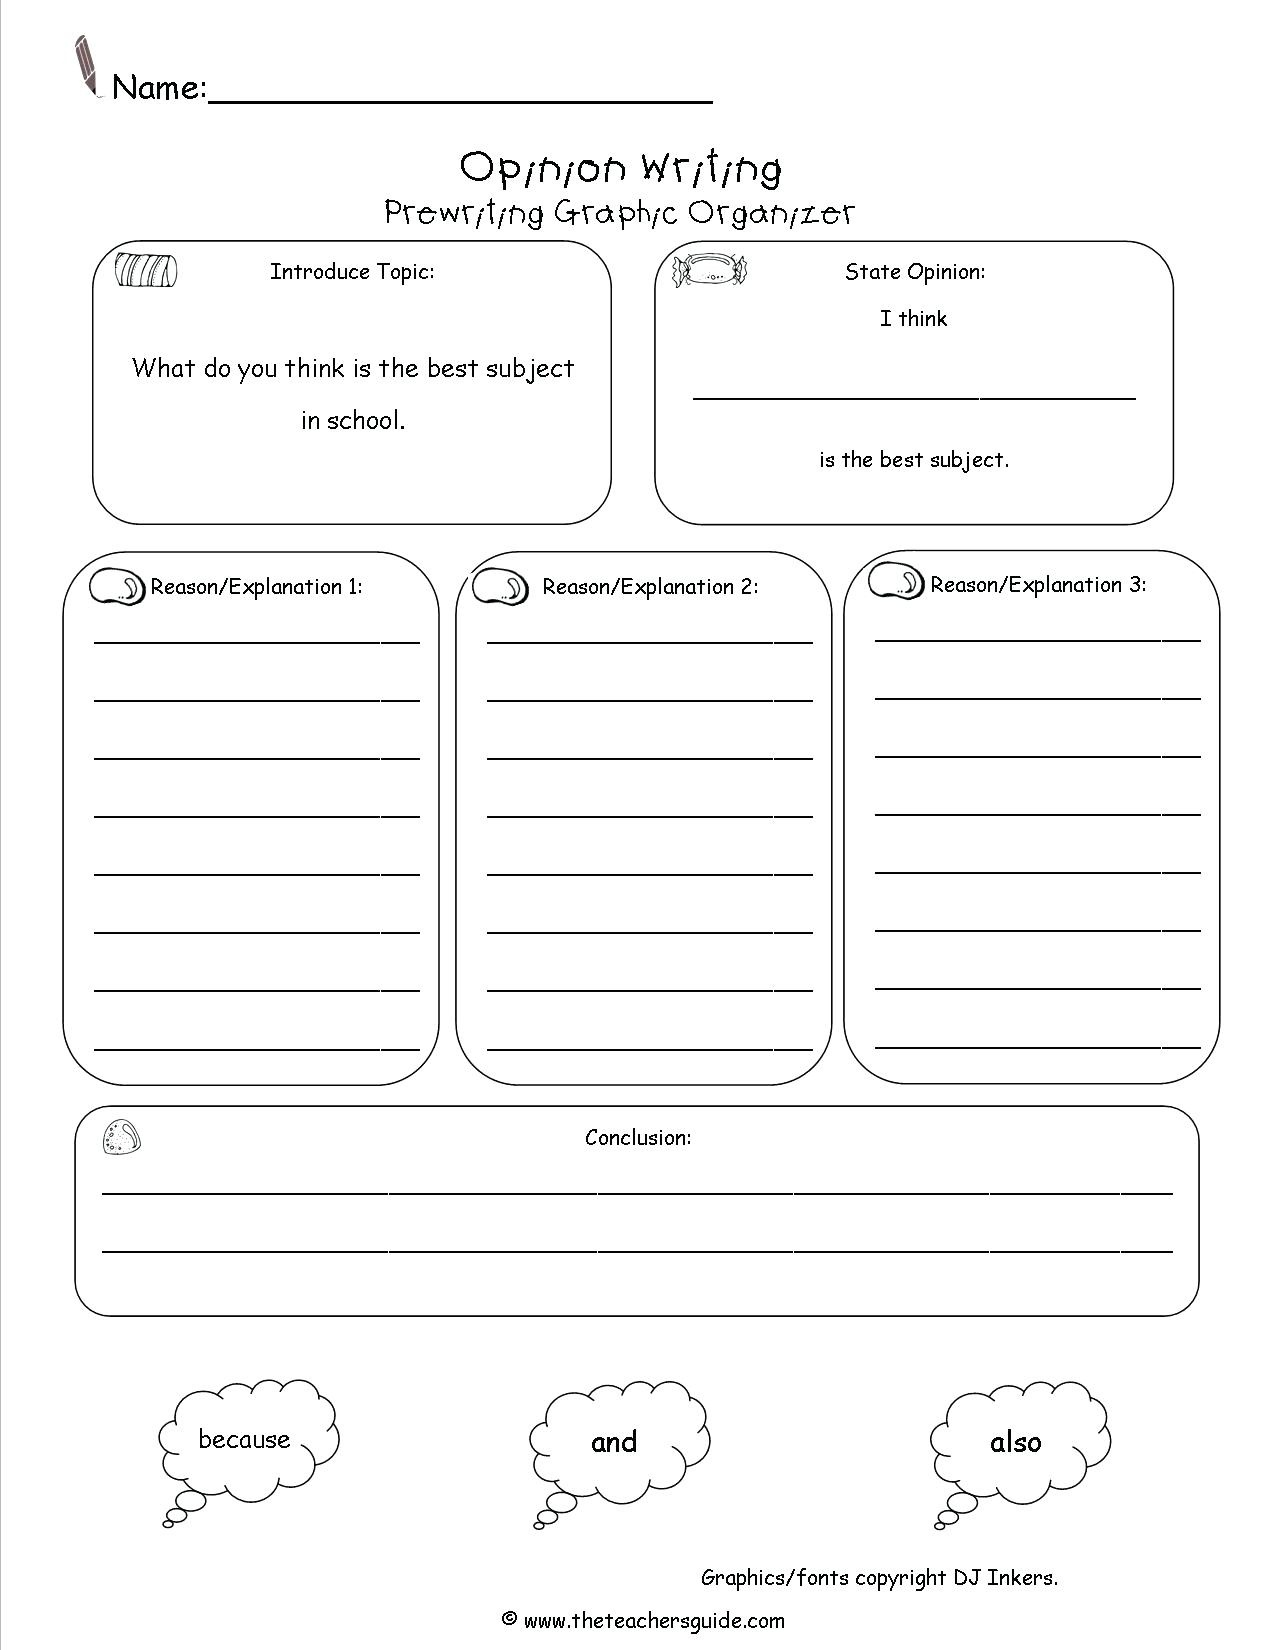 Free Printable Graphic Organizers (90+ Images In Collection) Page 1 - Free Printable Graphic Organizers